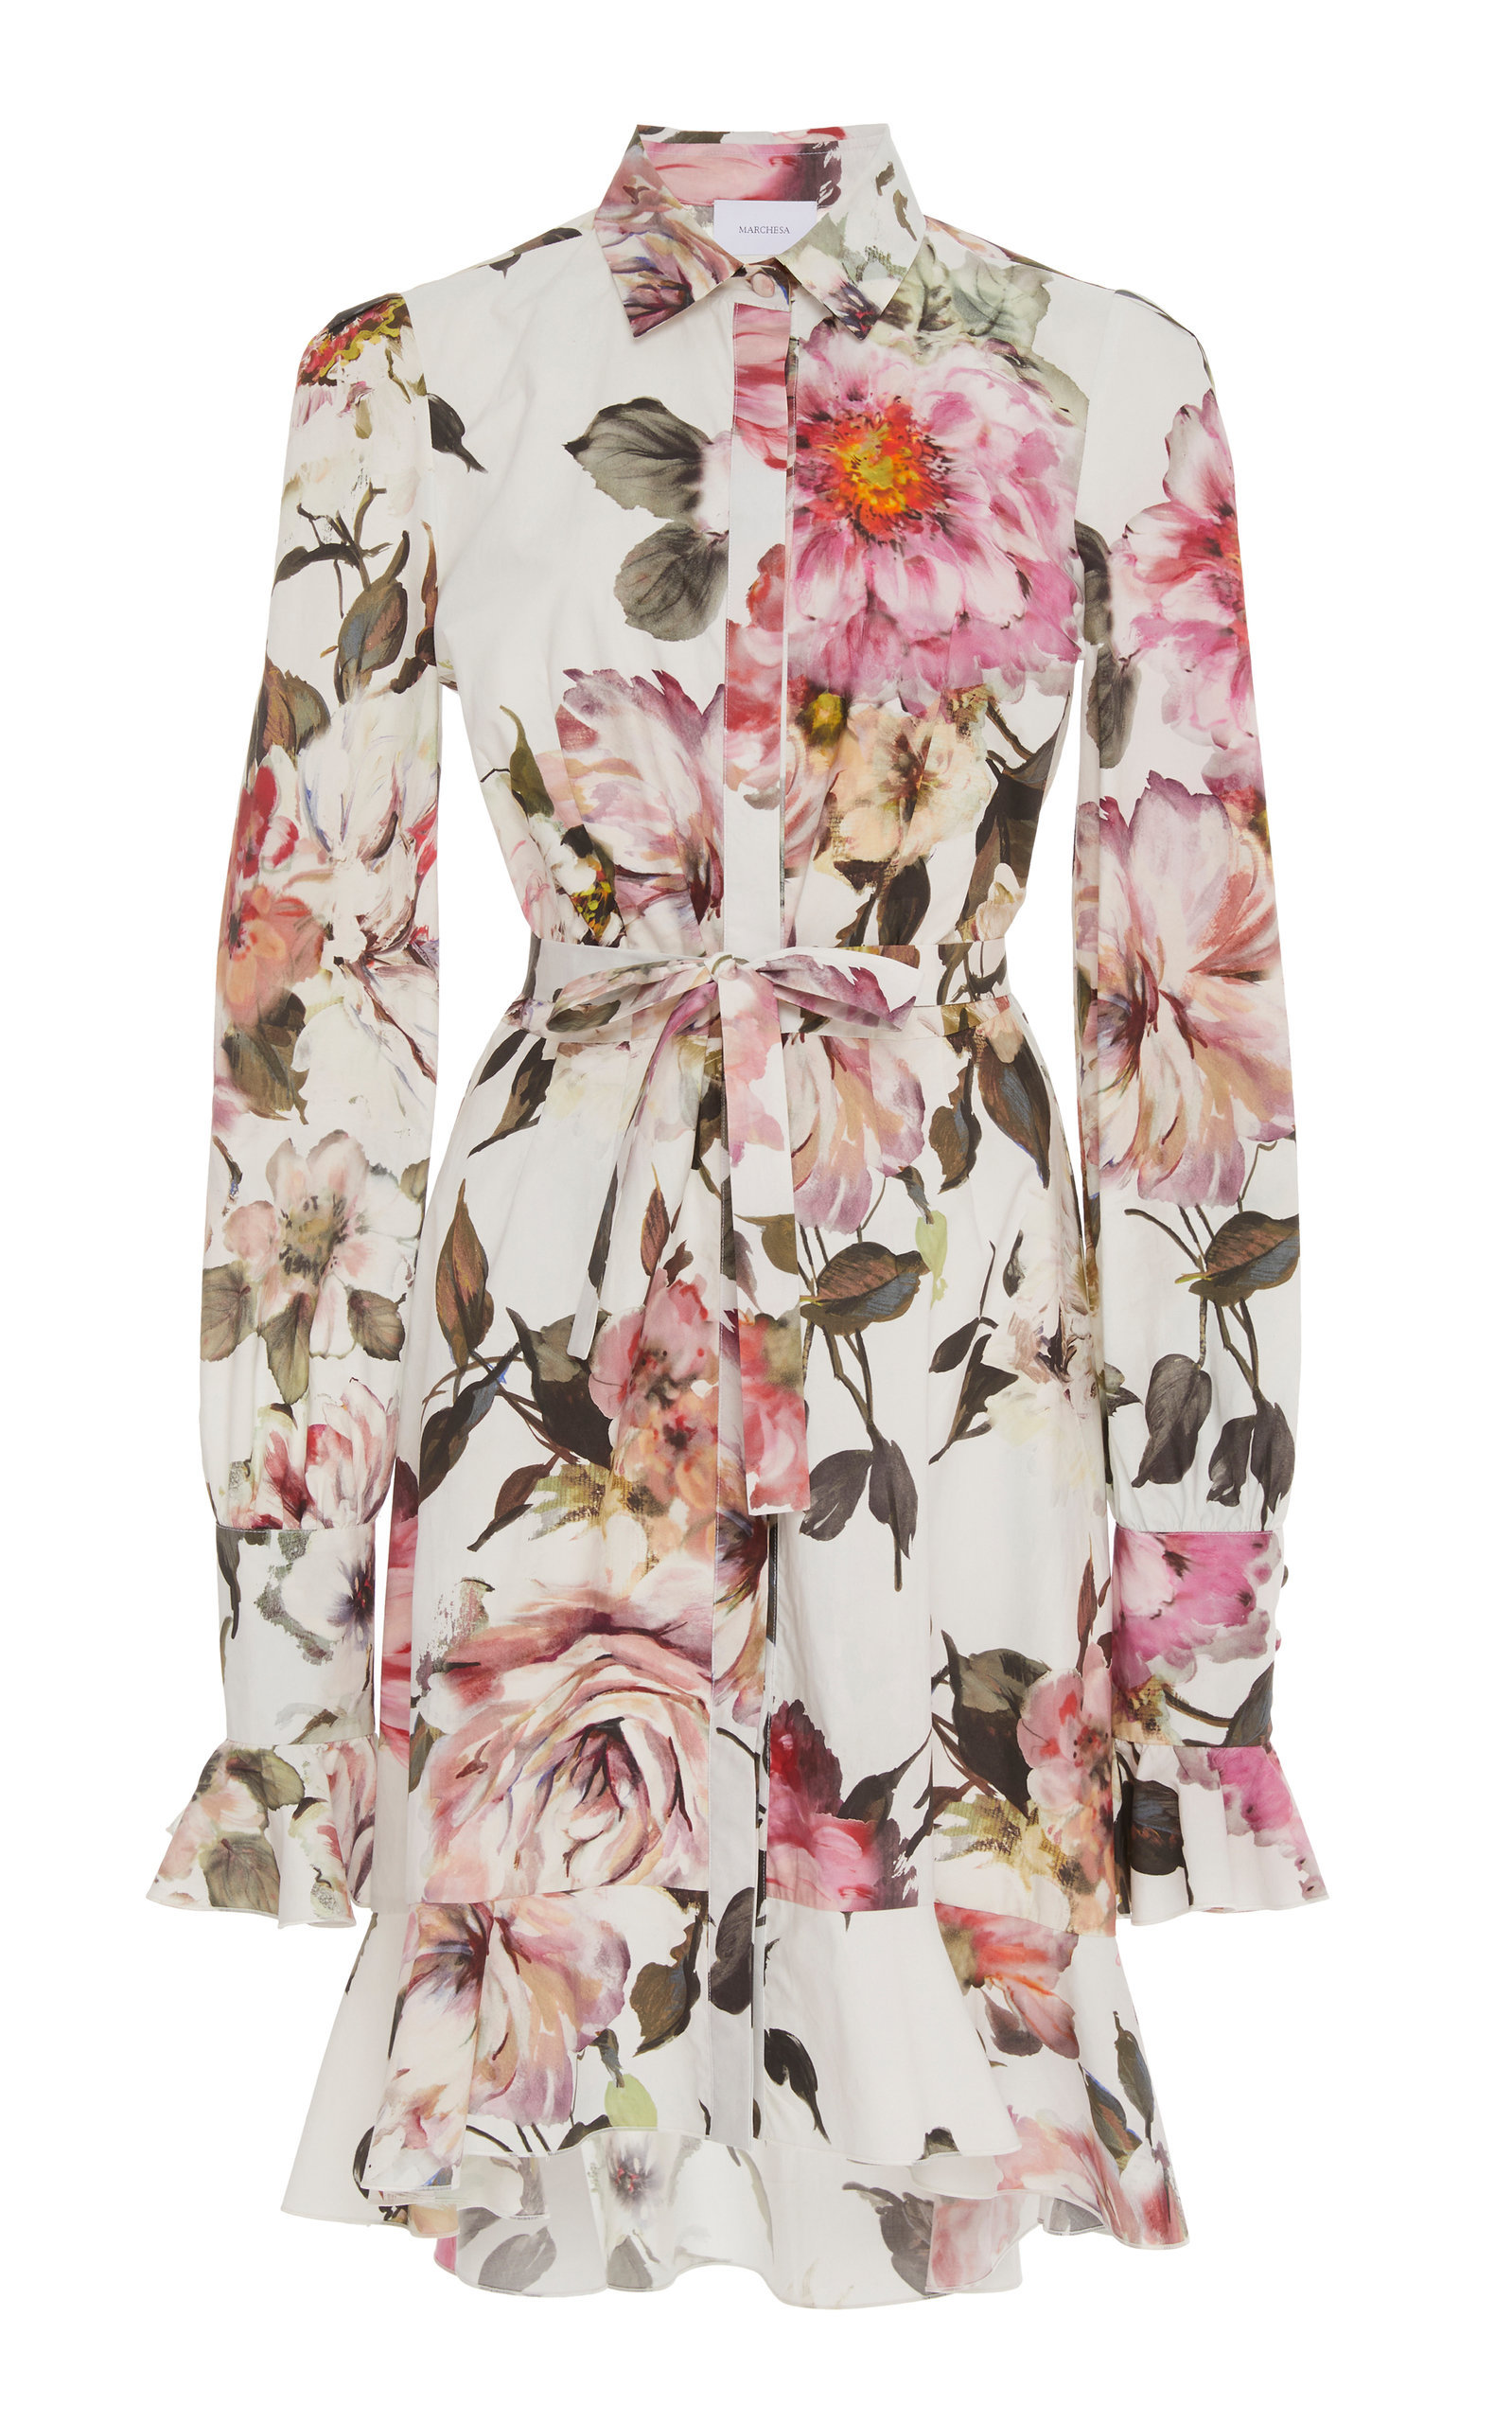 bf0610fd0f1 Marchesa Floral-Printed Cotton High-Low Mini Shirt Dress in 2019 ...